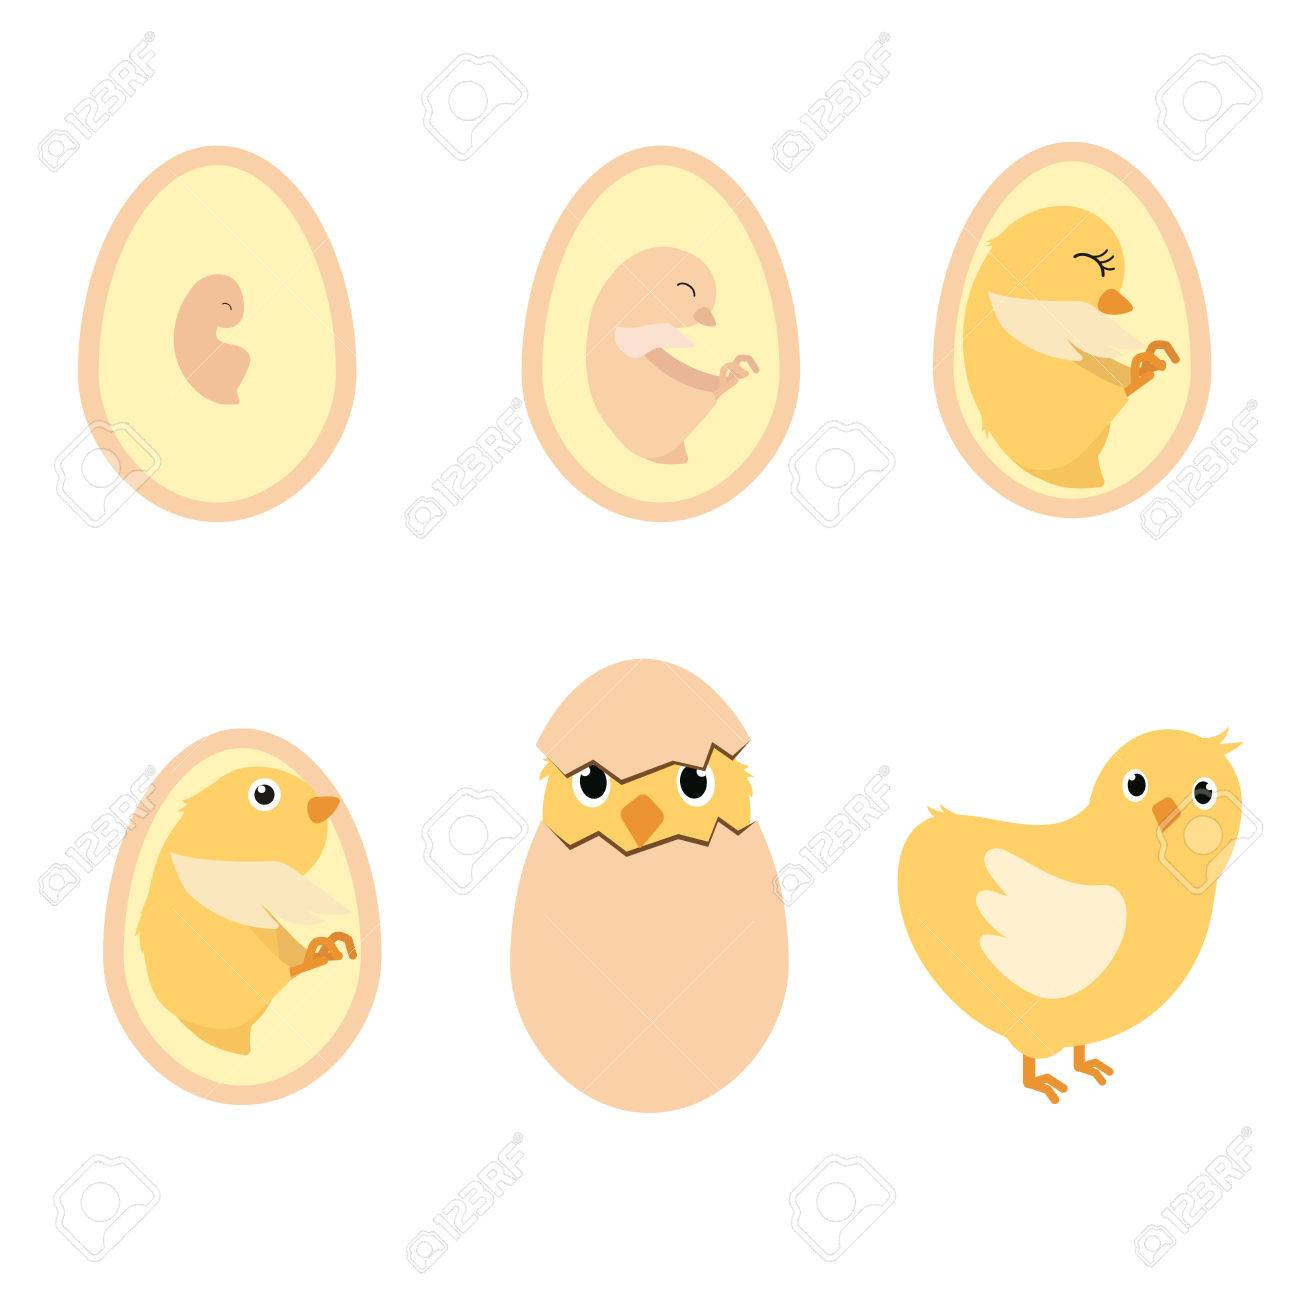 Chicken Egg Life Cycle And Anatomy Illustration Vector Royalty Free ...